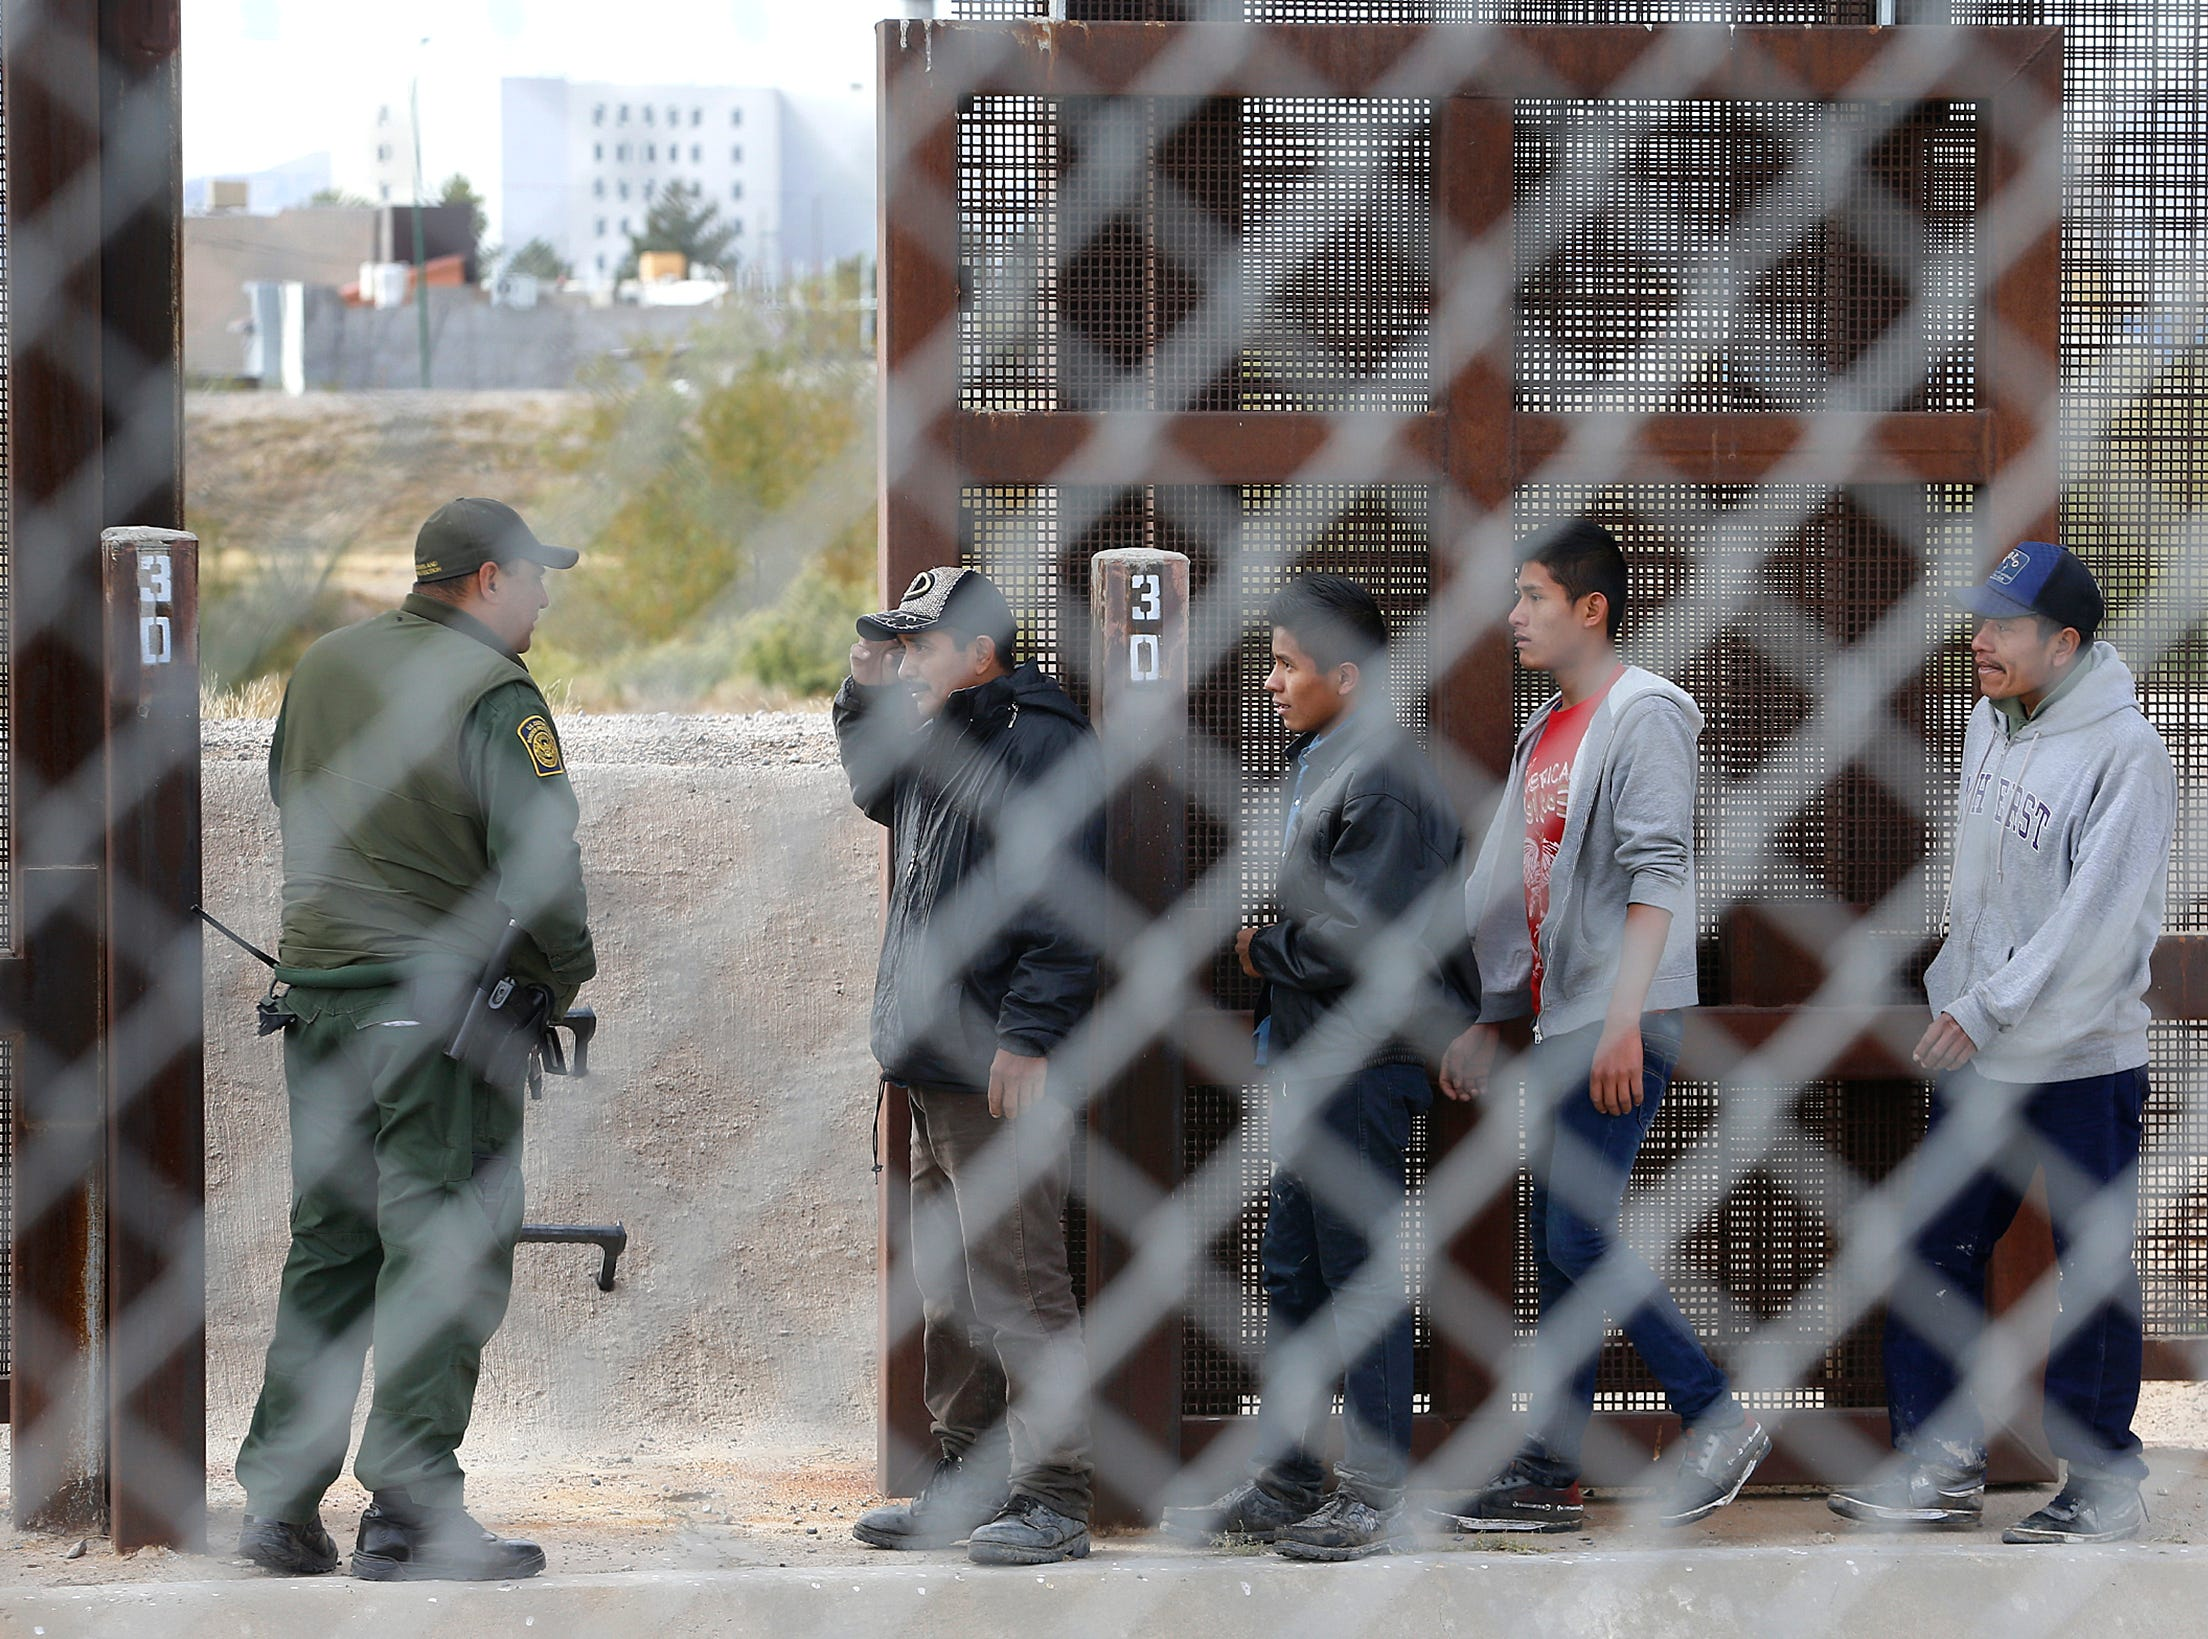 Border Patrol detains a large group of migrants near El Paso earlier this year.